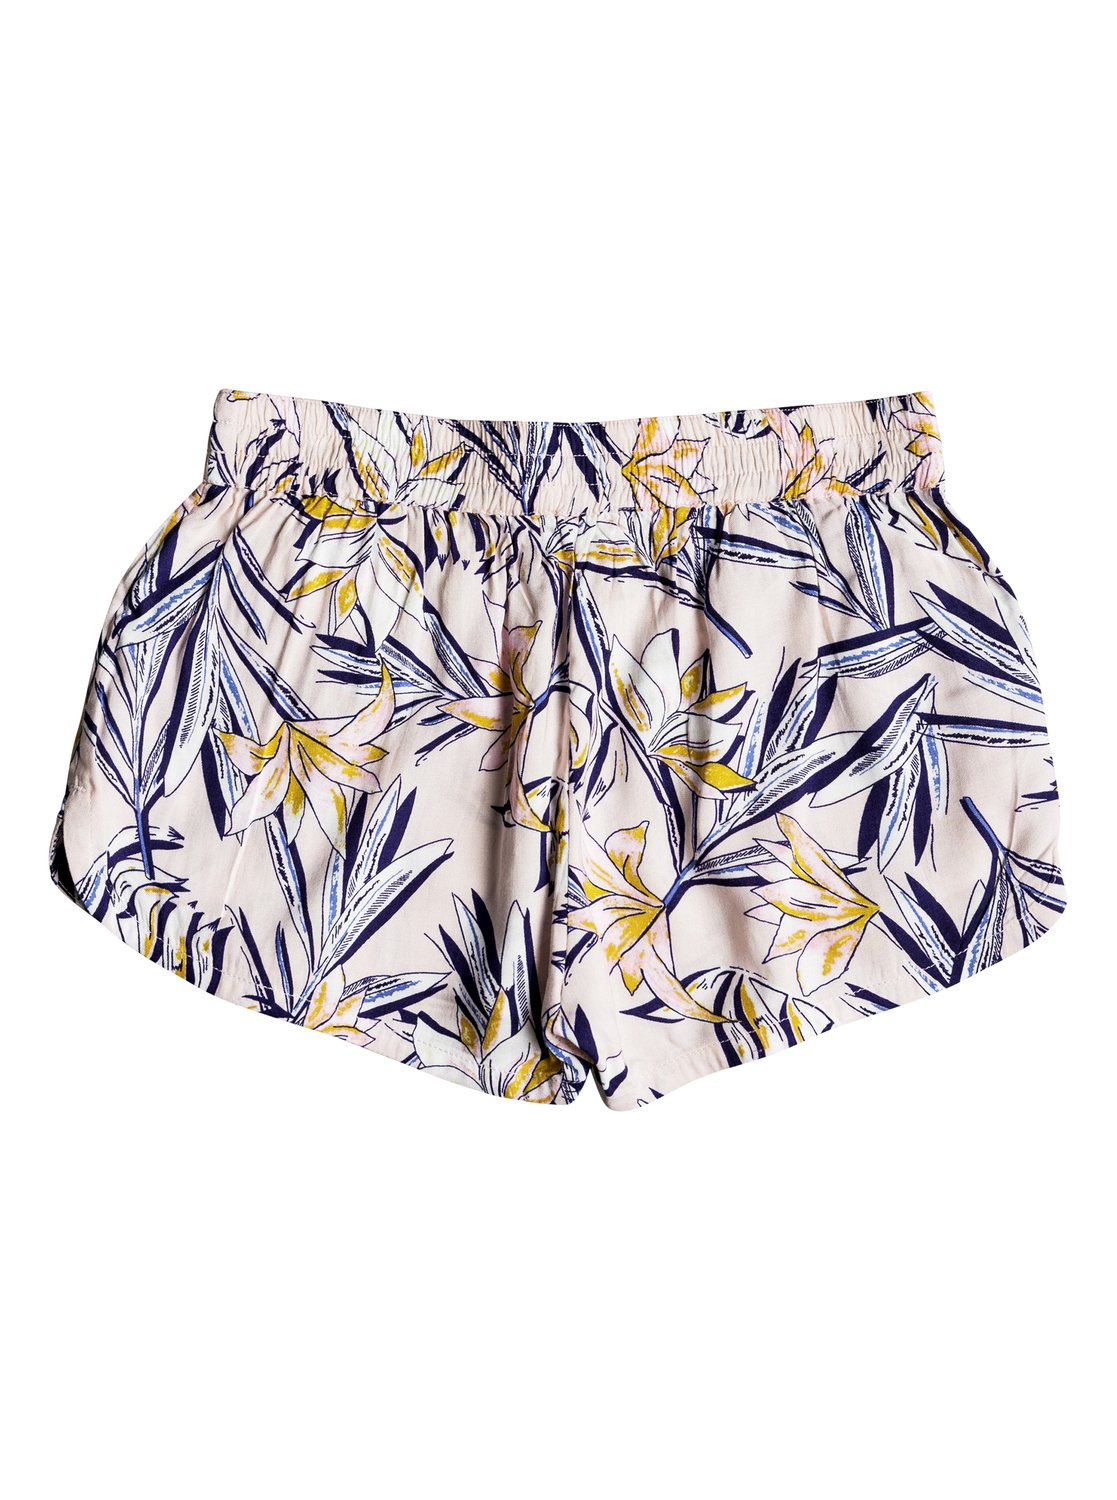 Roxy Girls Big Young Souls Beach Shorts ERGNS03031